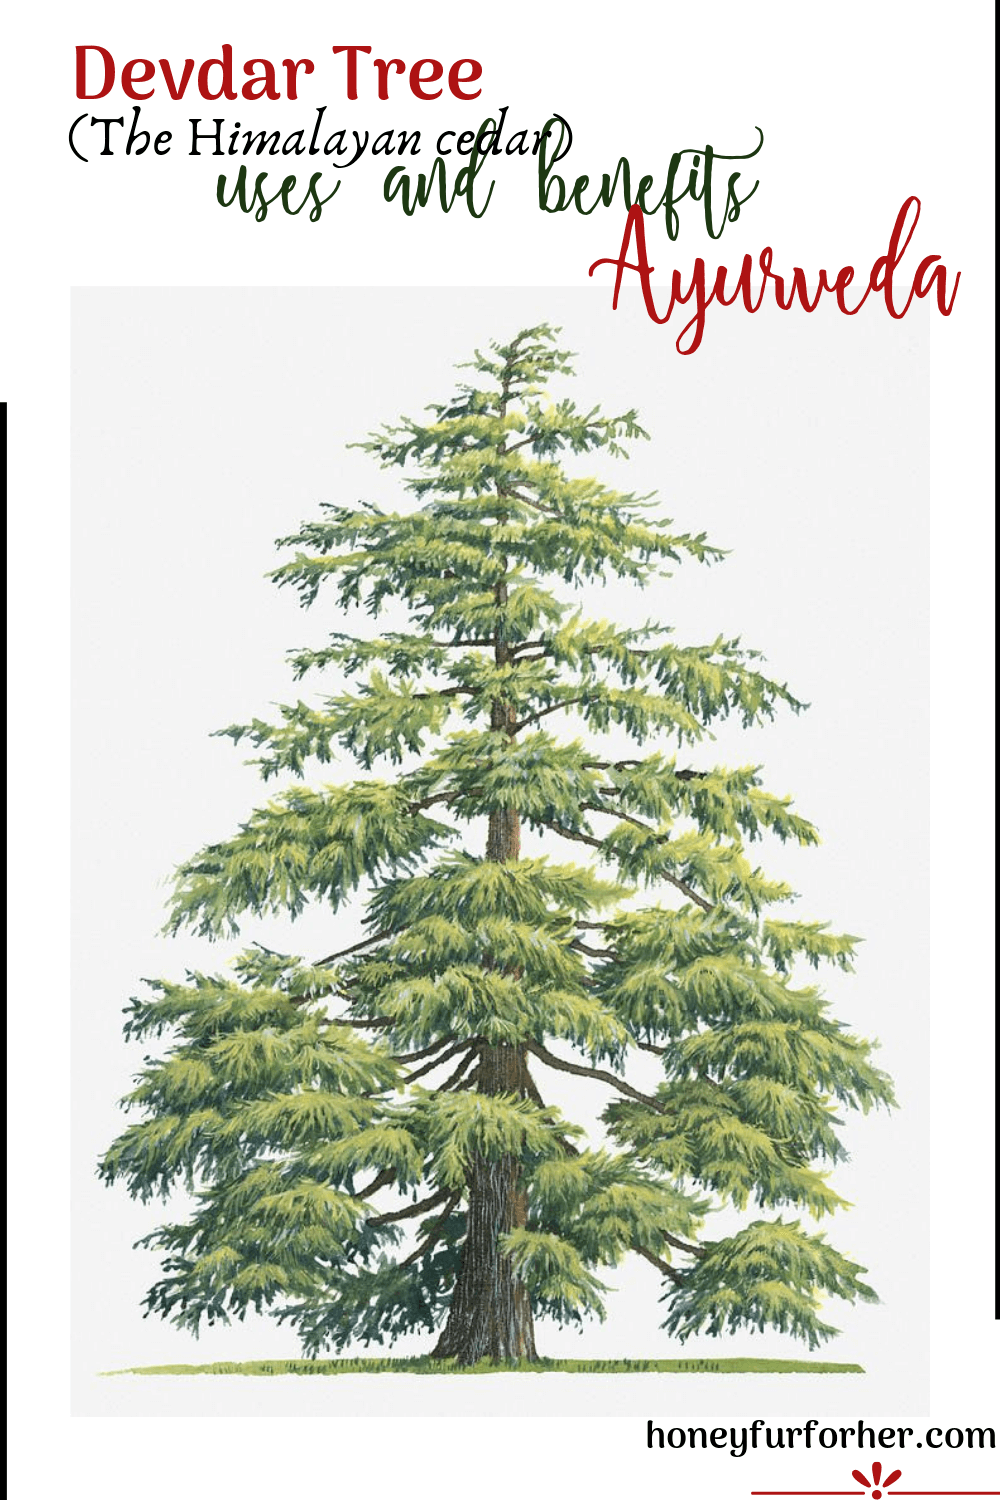 Devadaru Tree Himalayan Cedar Benefits Pinterest Pin Image